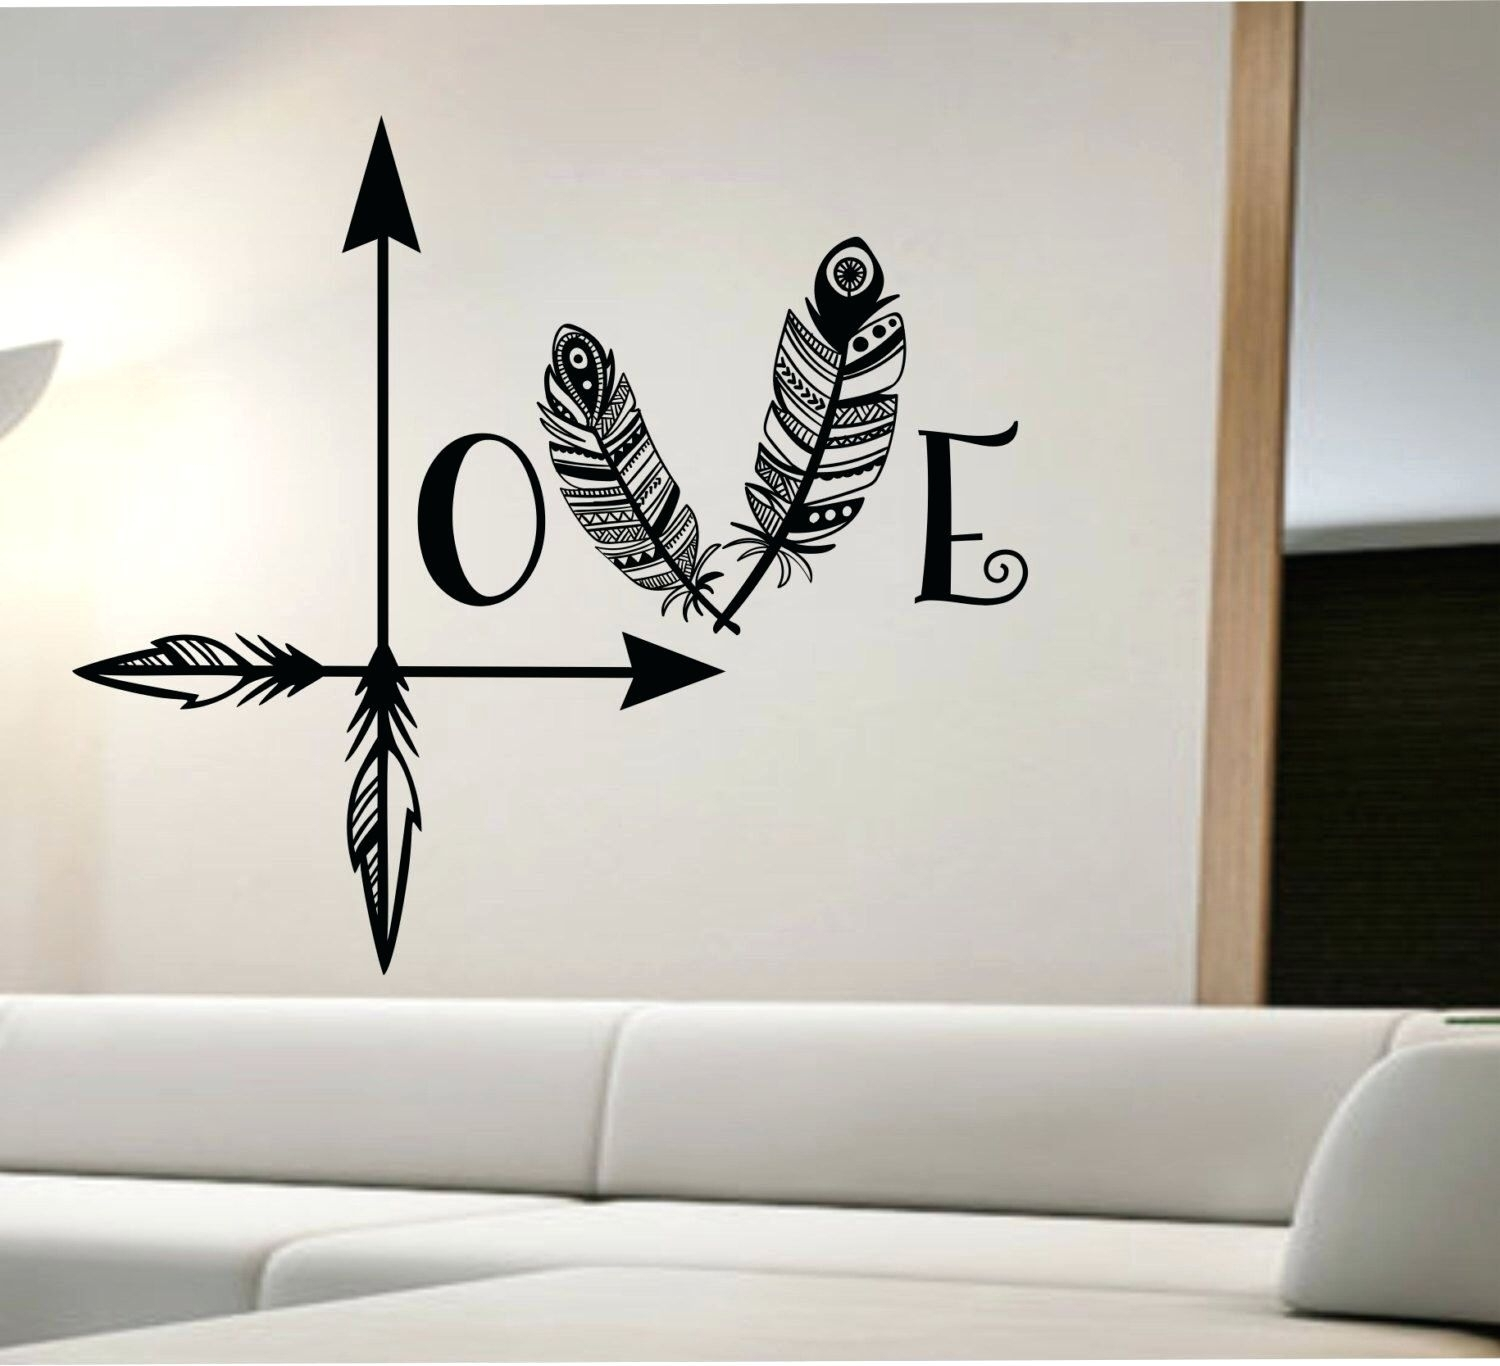 Bedroom : Wall Arts Love Heart Art Canvas For Bedroom And Amusing Within Most Current Love Canvas Wall Art (View 9 of 15)